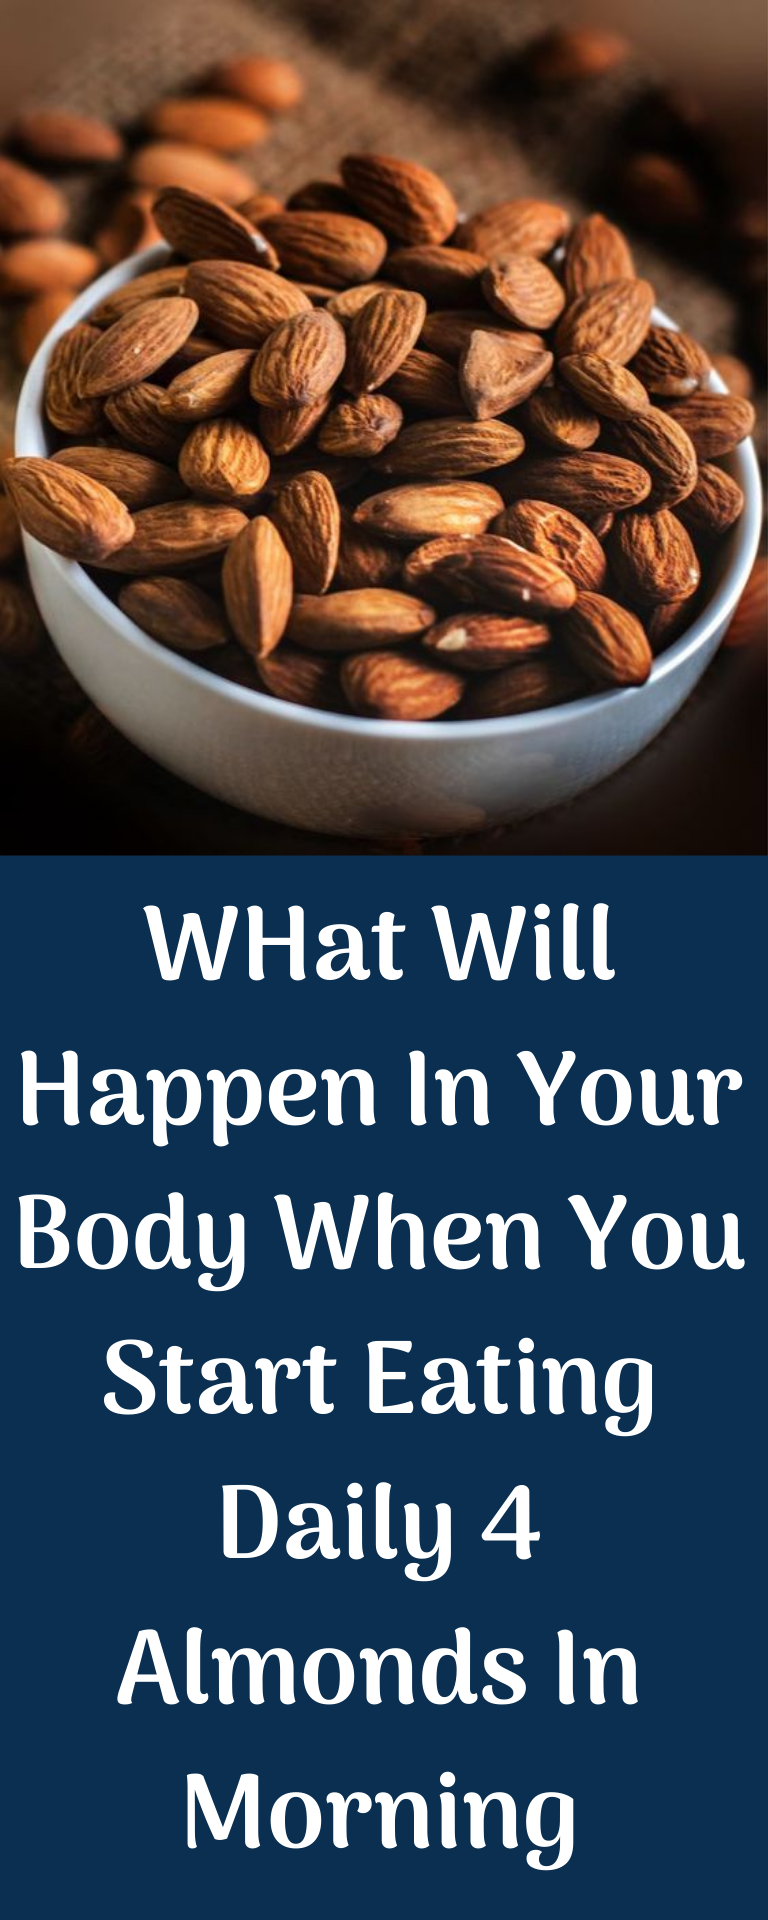 Almonds are one of those nutrient-dense foods that can be hard to stop munching on once you're crunc...